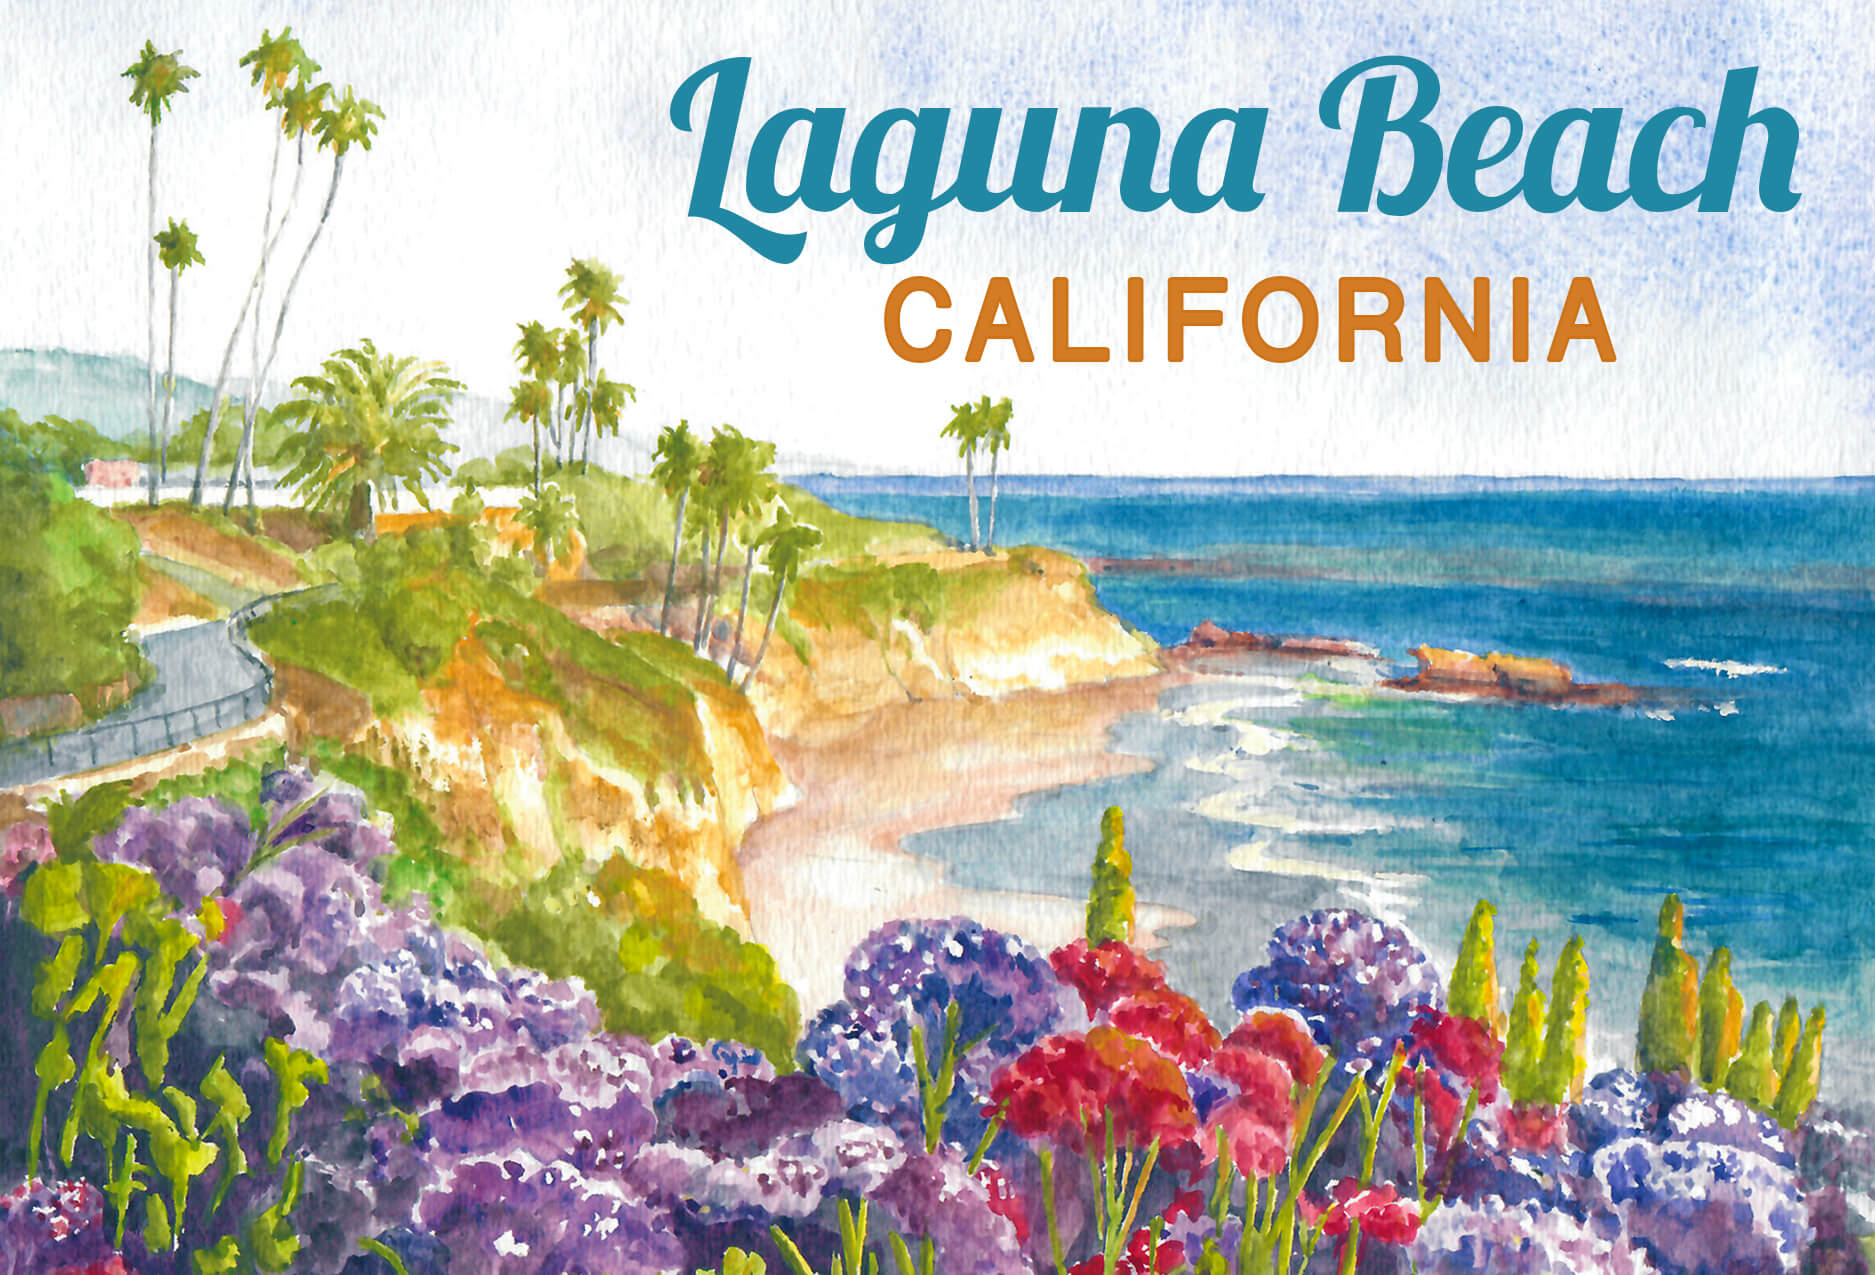 Puzzle showing a cliff side view of Laguna Beach and the pacific ocean